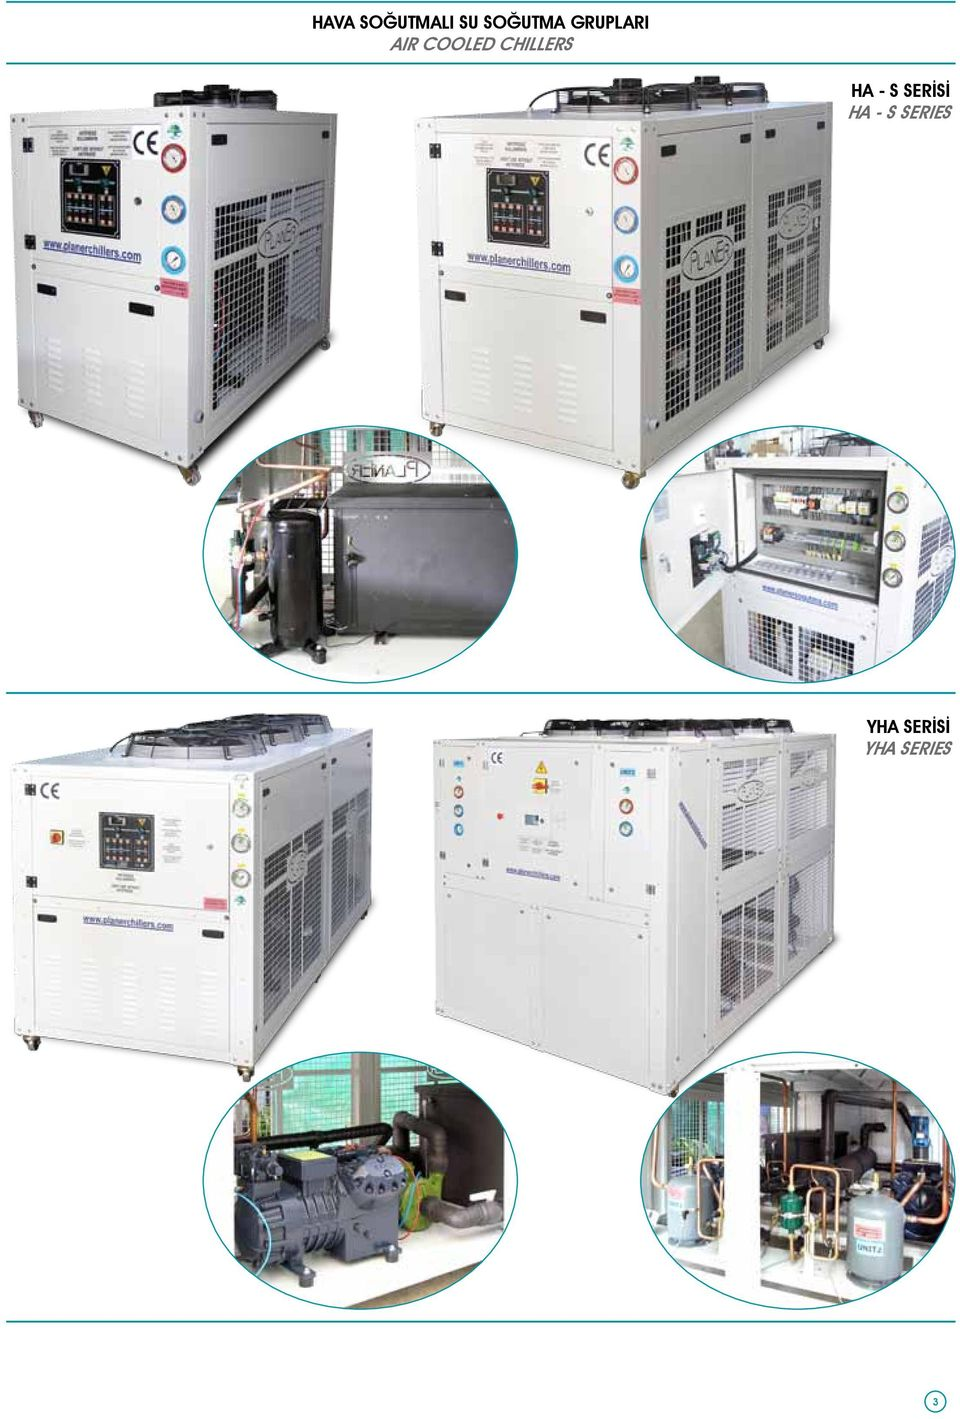 COOLED CHILLERS HA - S